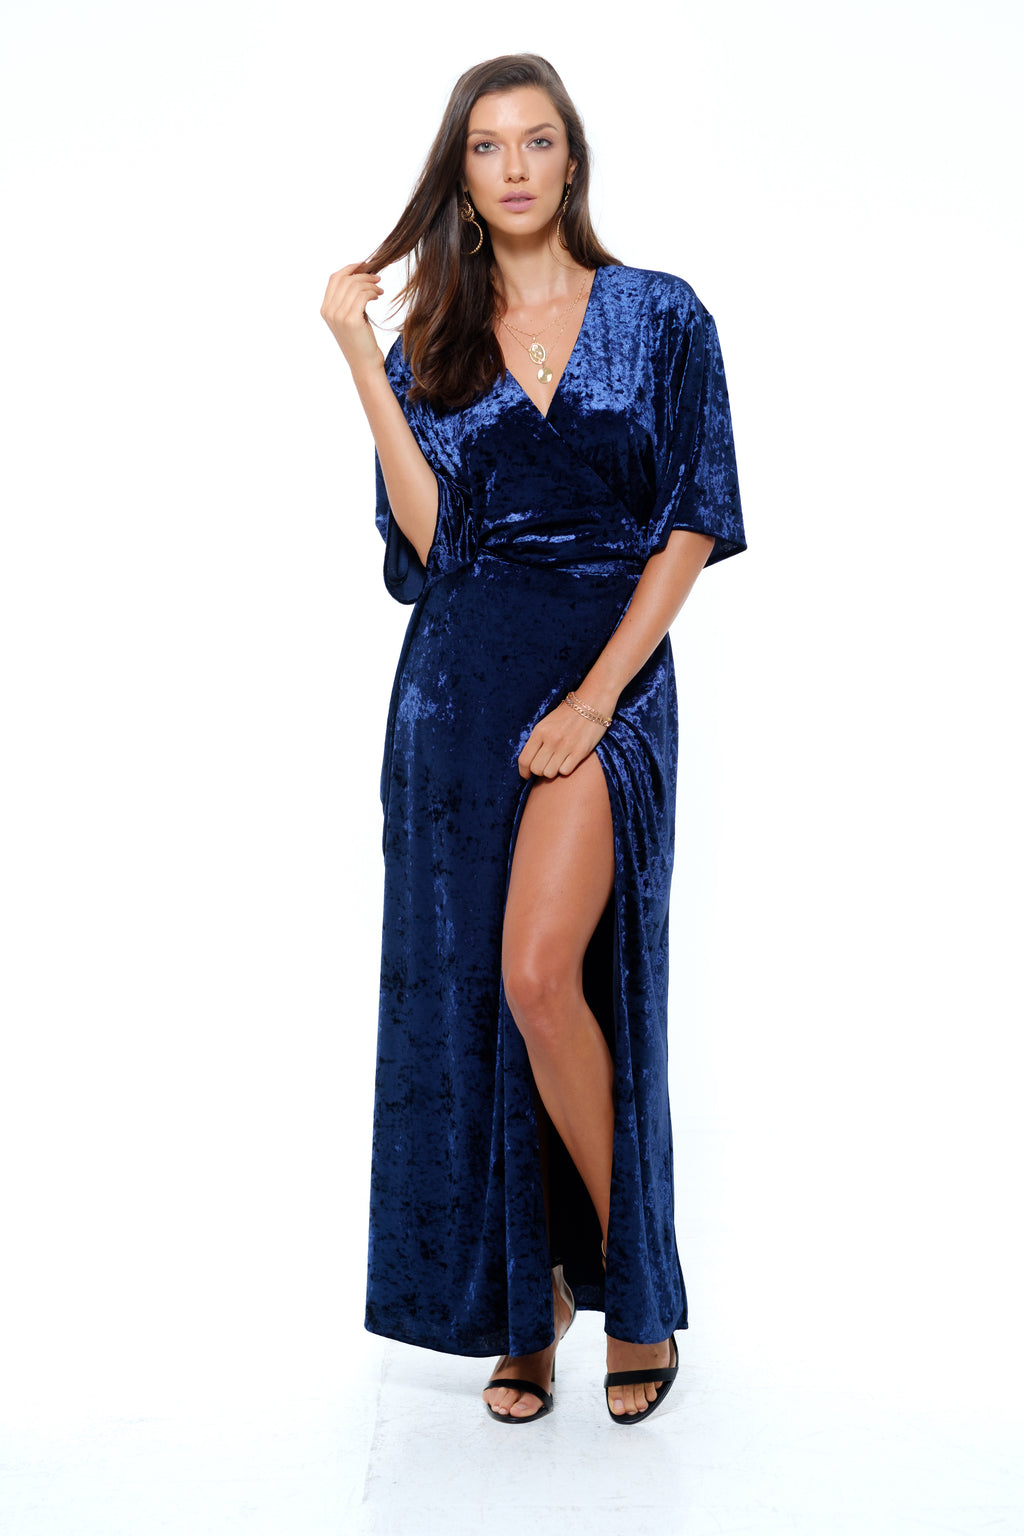 Sorrento Dress- Blue velvet